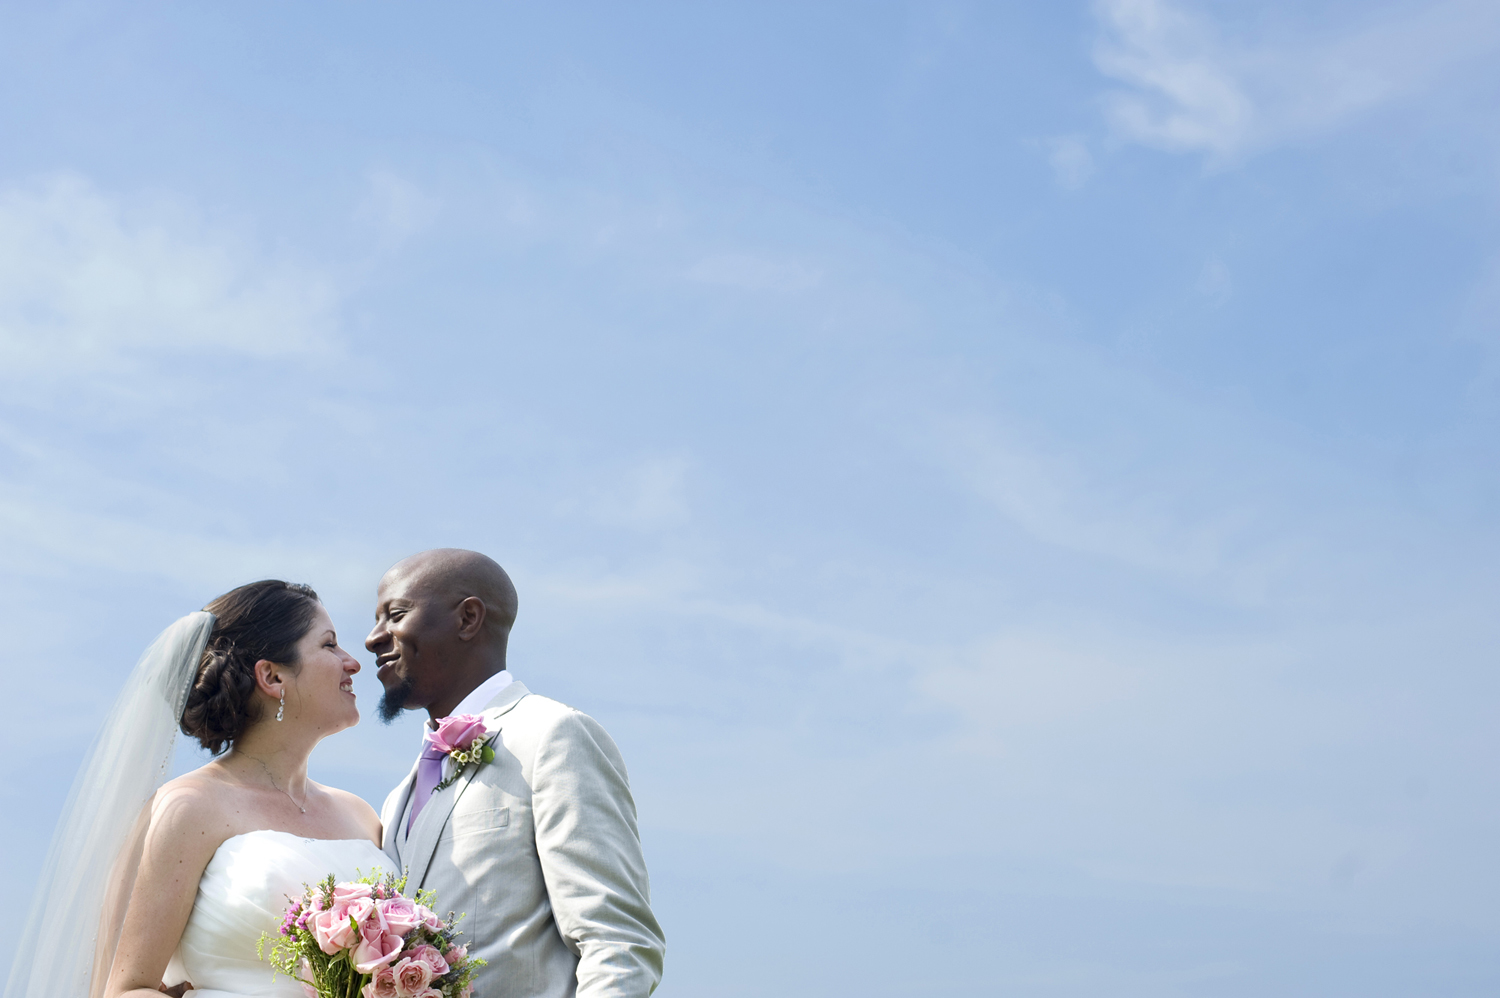 portrait of bride and groom against blue sky at The Water Witch Club at Monmouth Hills on their wedding day. Jersey Shore wedding photos